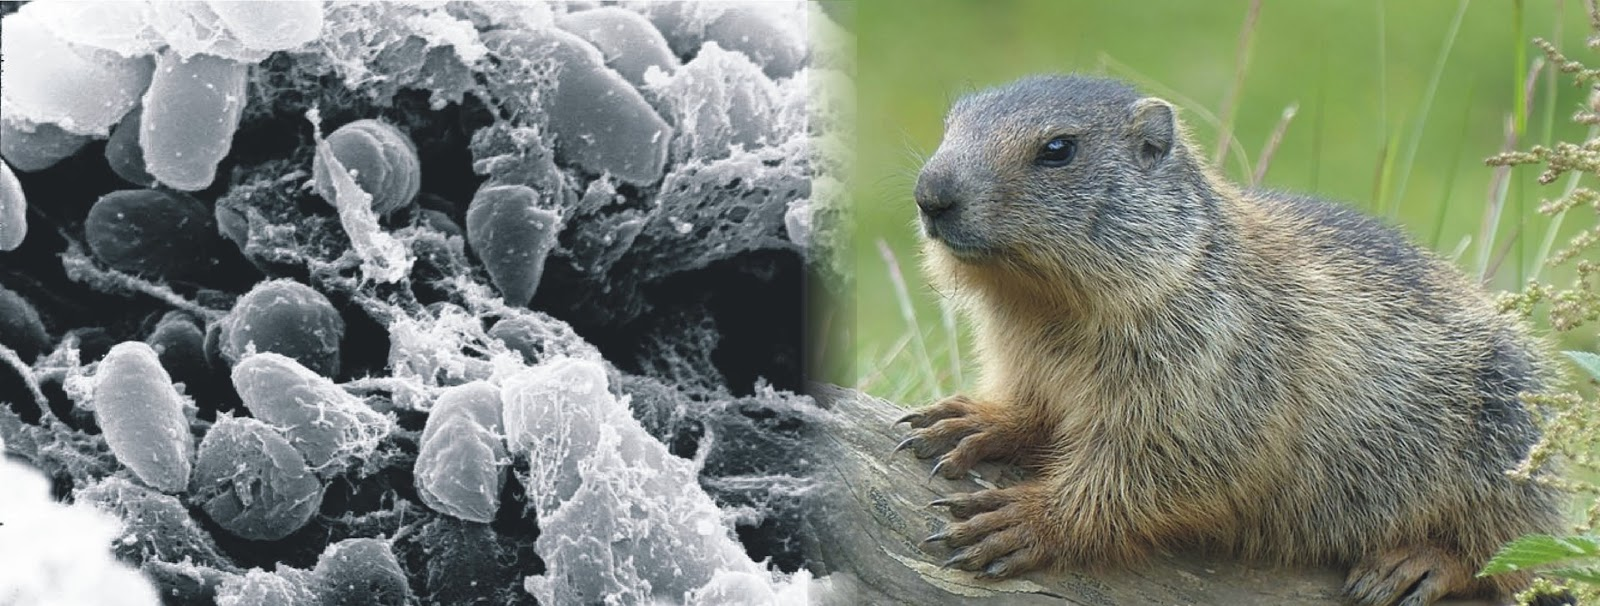 Another bubonic plague linked to people eating marmot meat ...